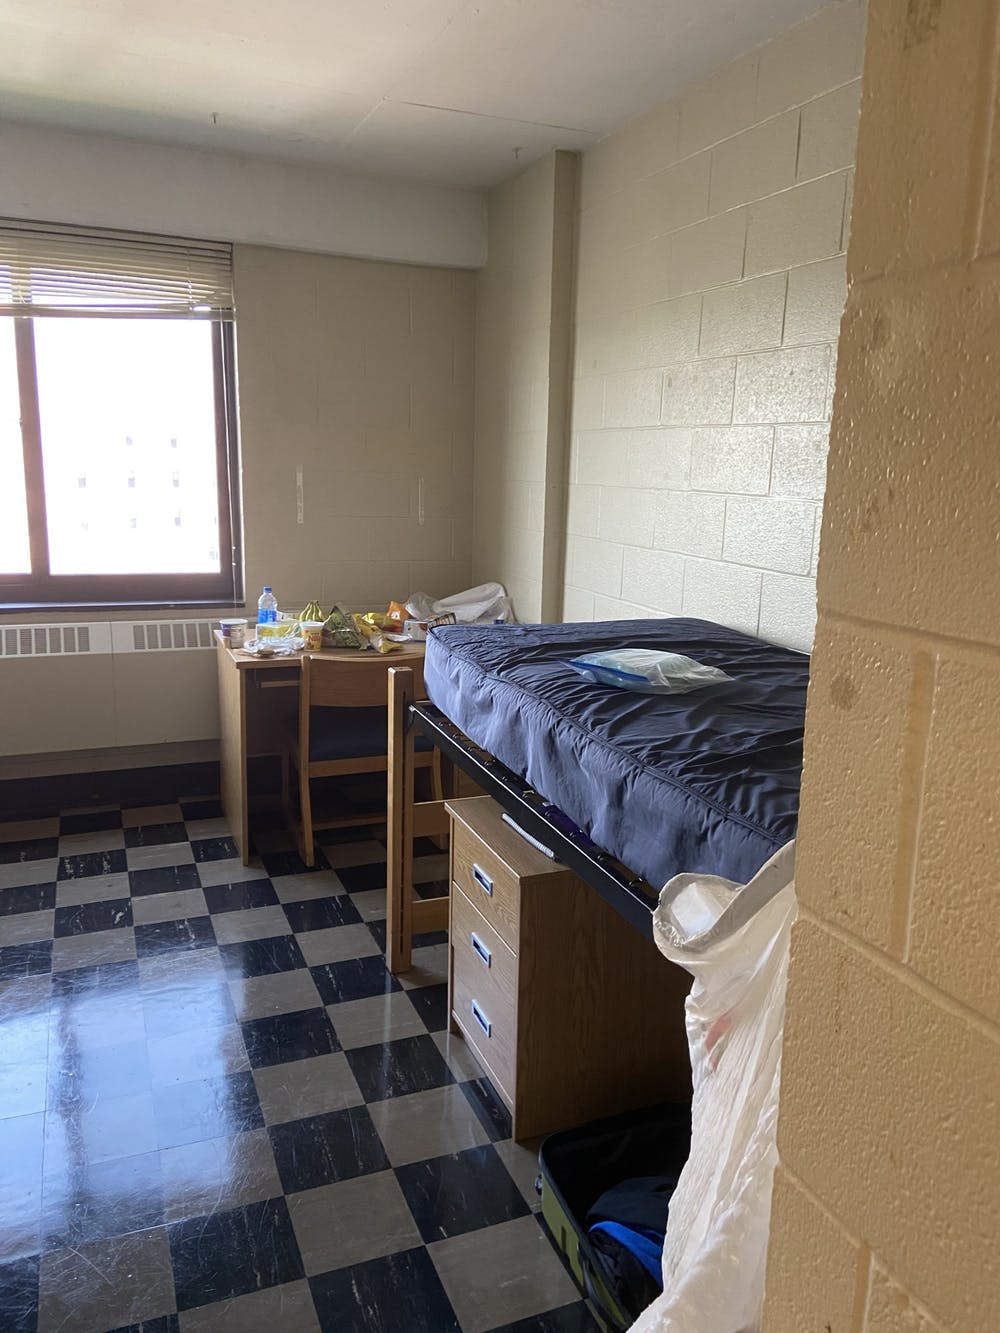 Thomas insists that UB is not being honest with students about the conditions inside the dorms and that no one is checking on quarantined students.